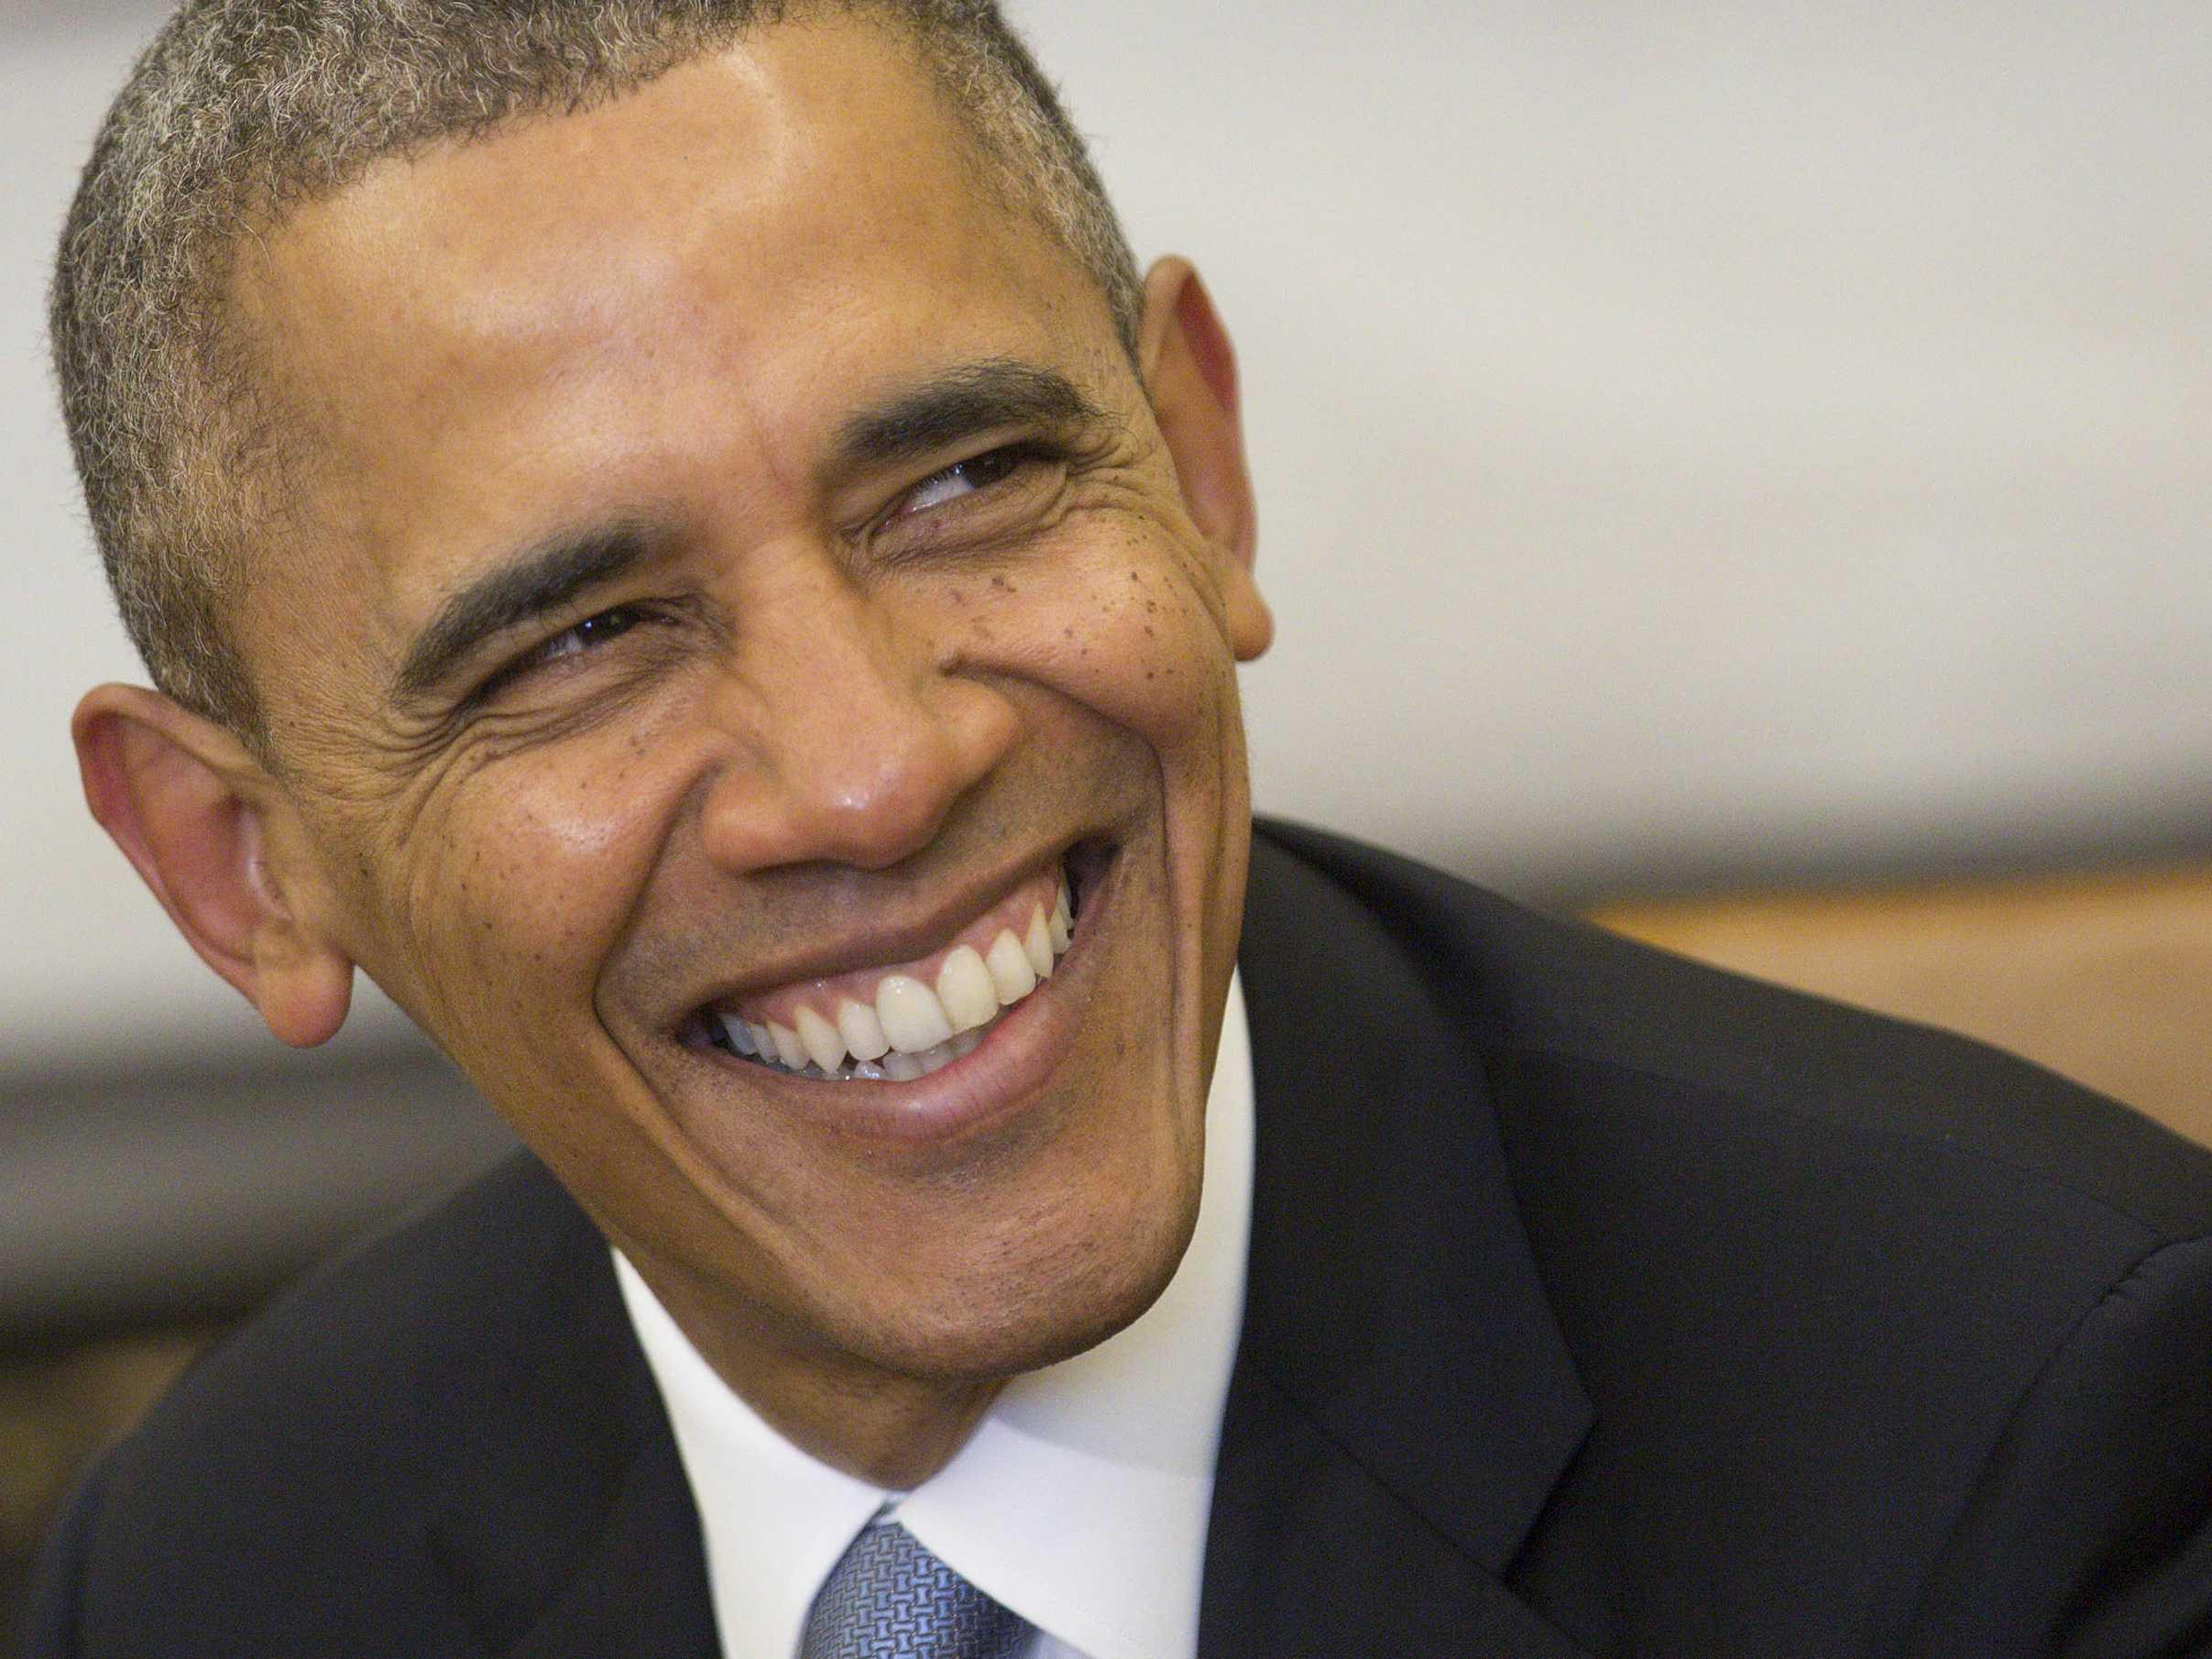 Barack Obama's go-to career advice is perfect for anybody who has felt stuck